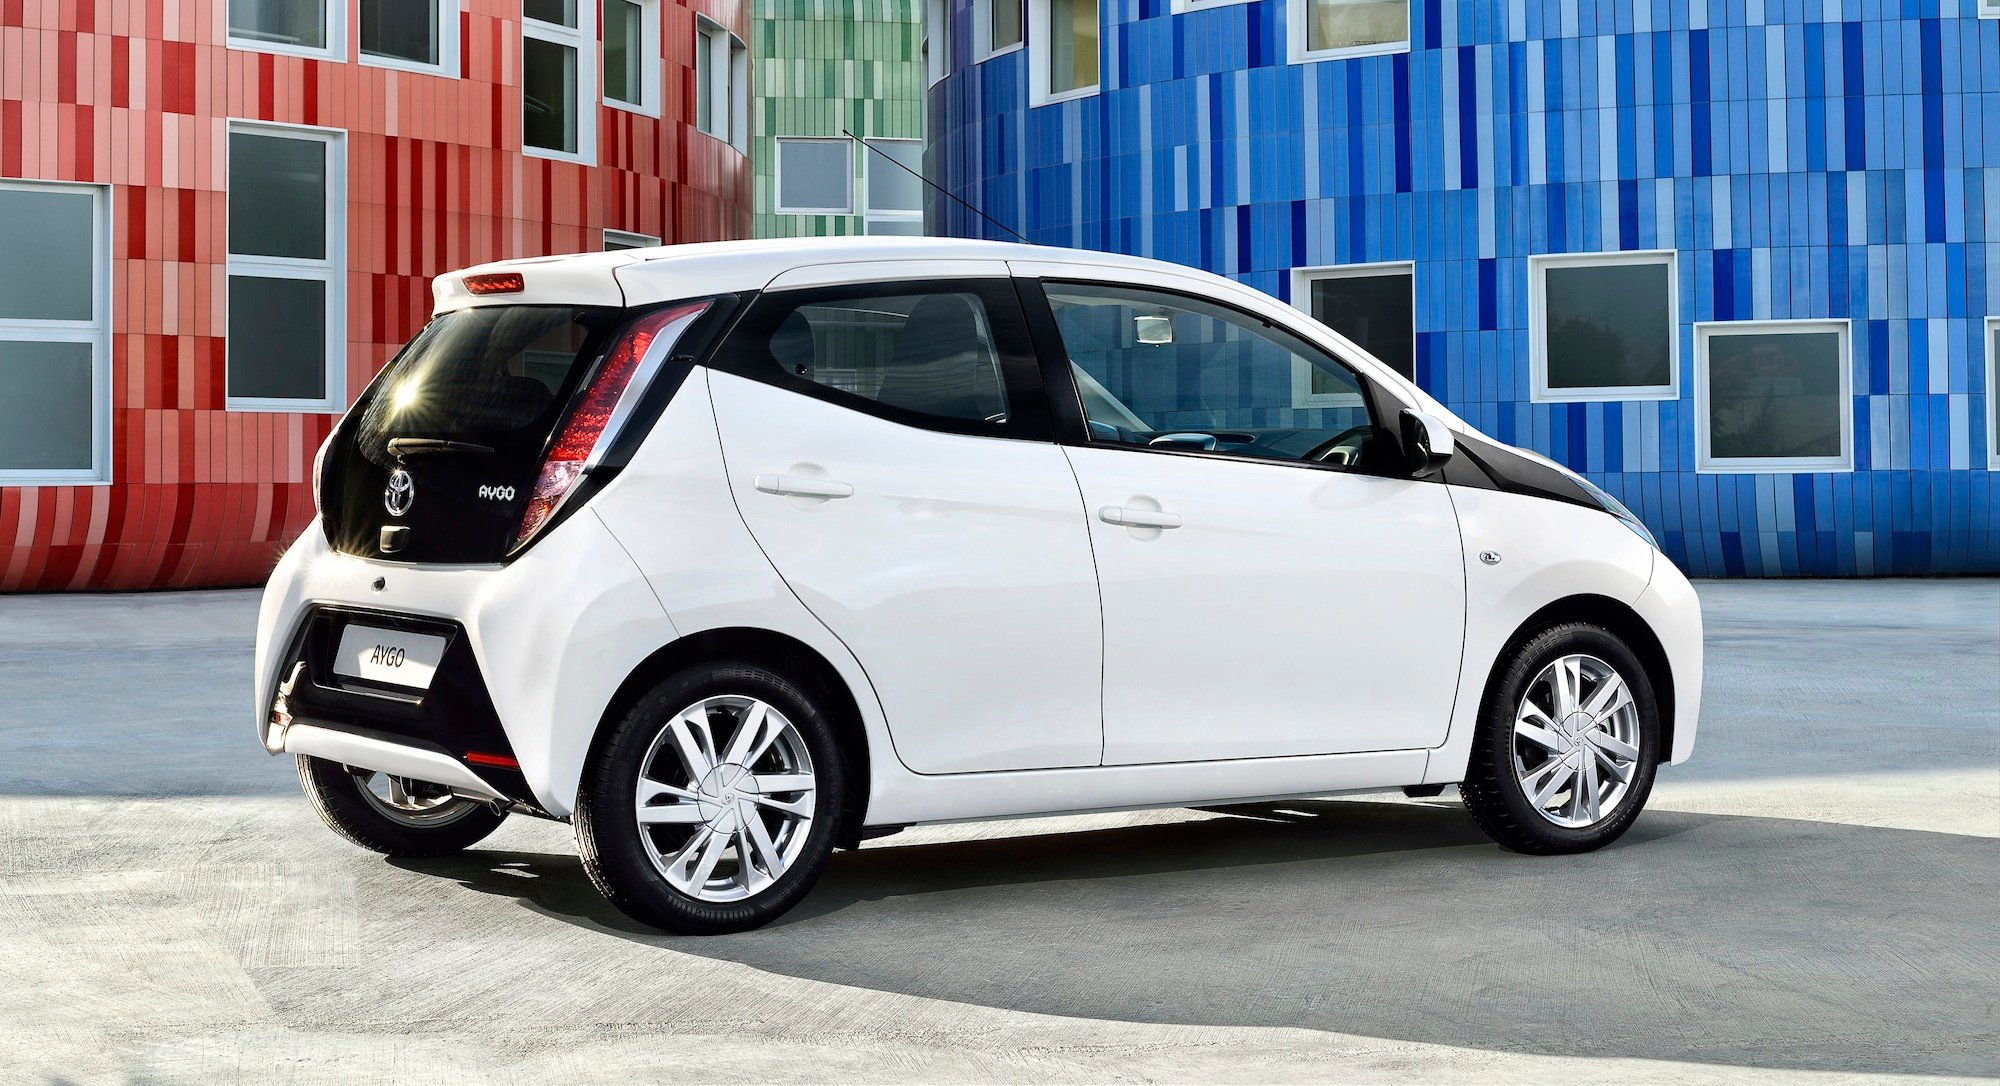 2014 toyota aygo euro hip city hatch unveiled photos 1 of 16. Black Bedroom Furniture Sets. Home Design Ideas